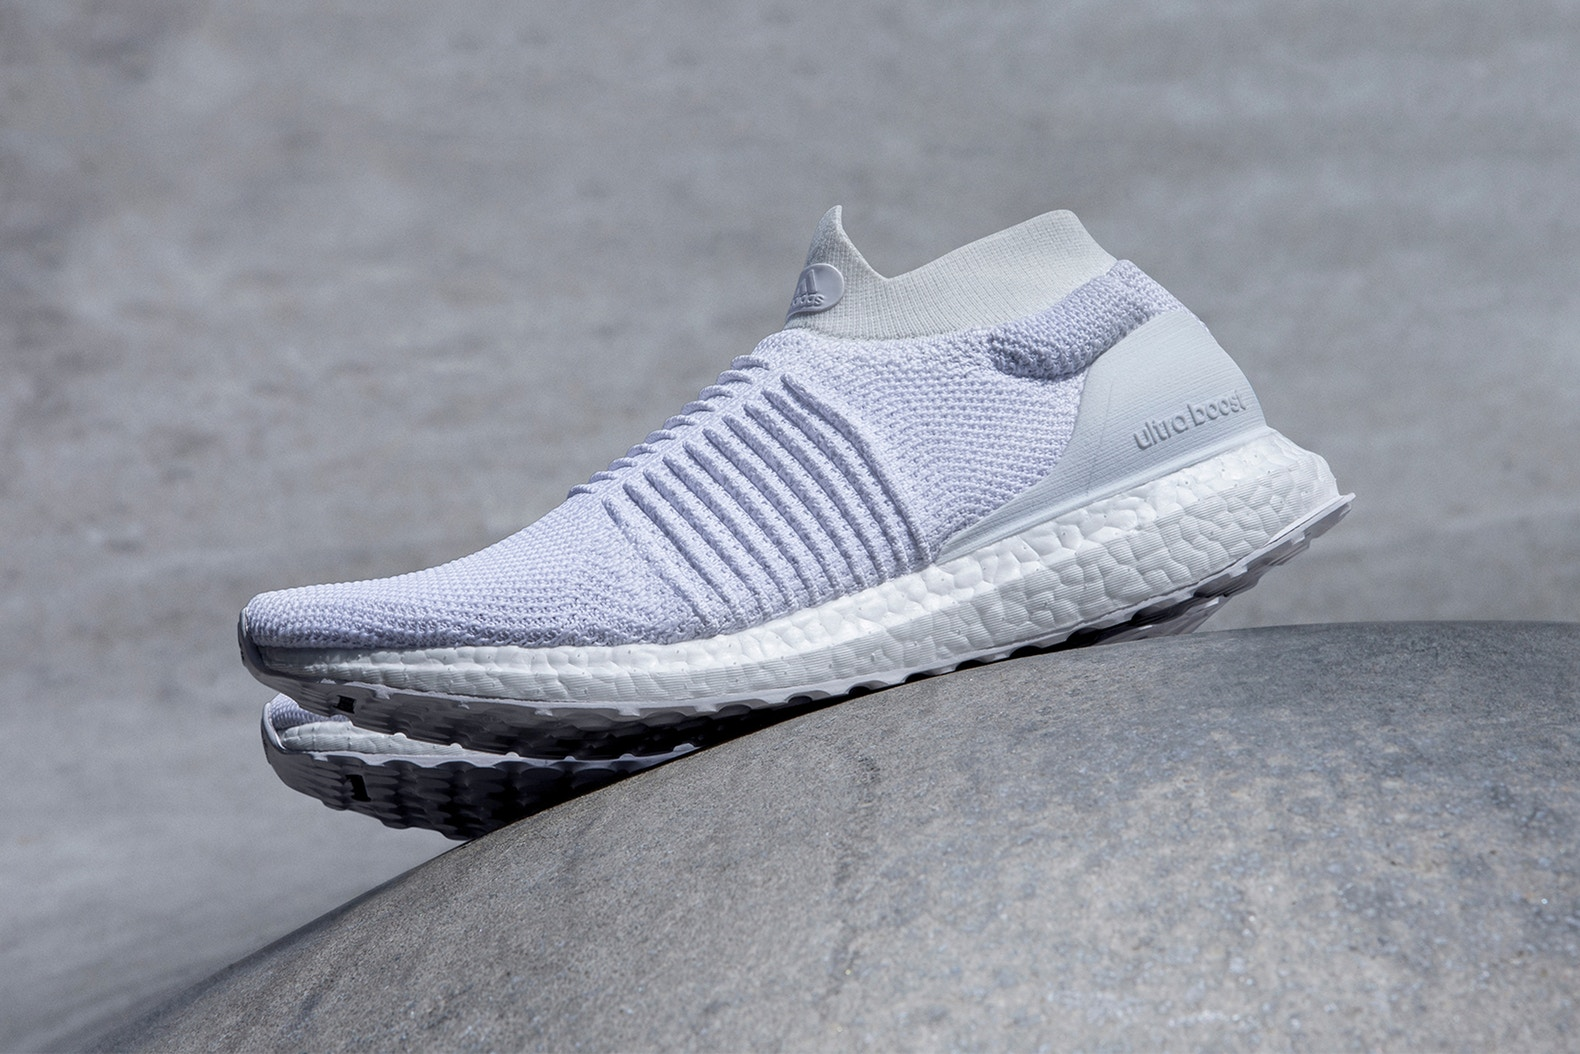 new product c9e4b 3a1d5 The adidas Laceless UltraBOOST Launches Next Month - Trapped Magazine